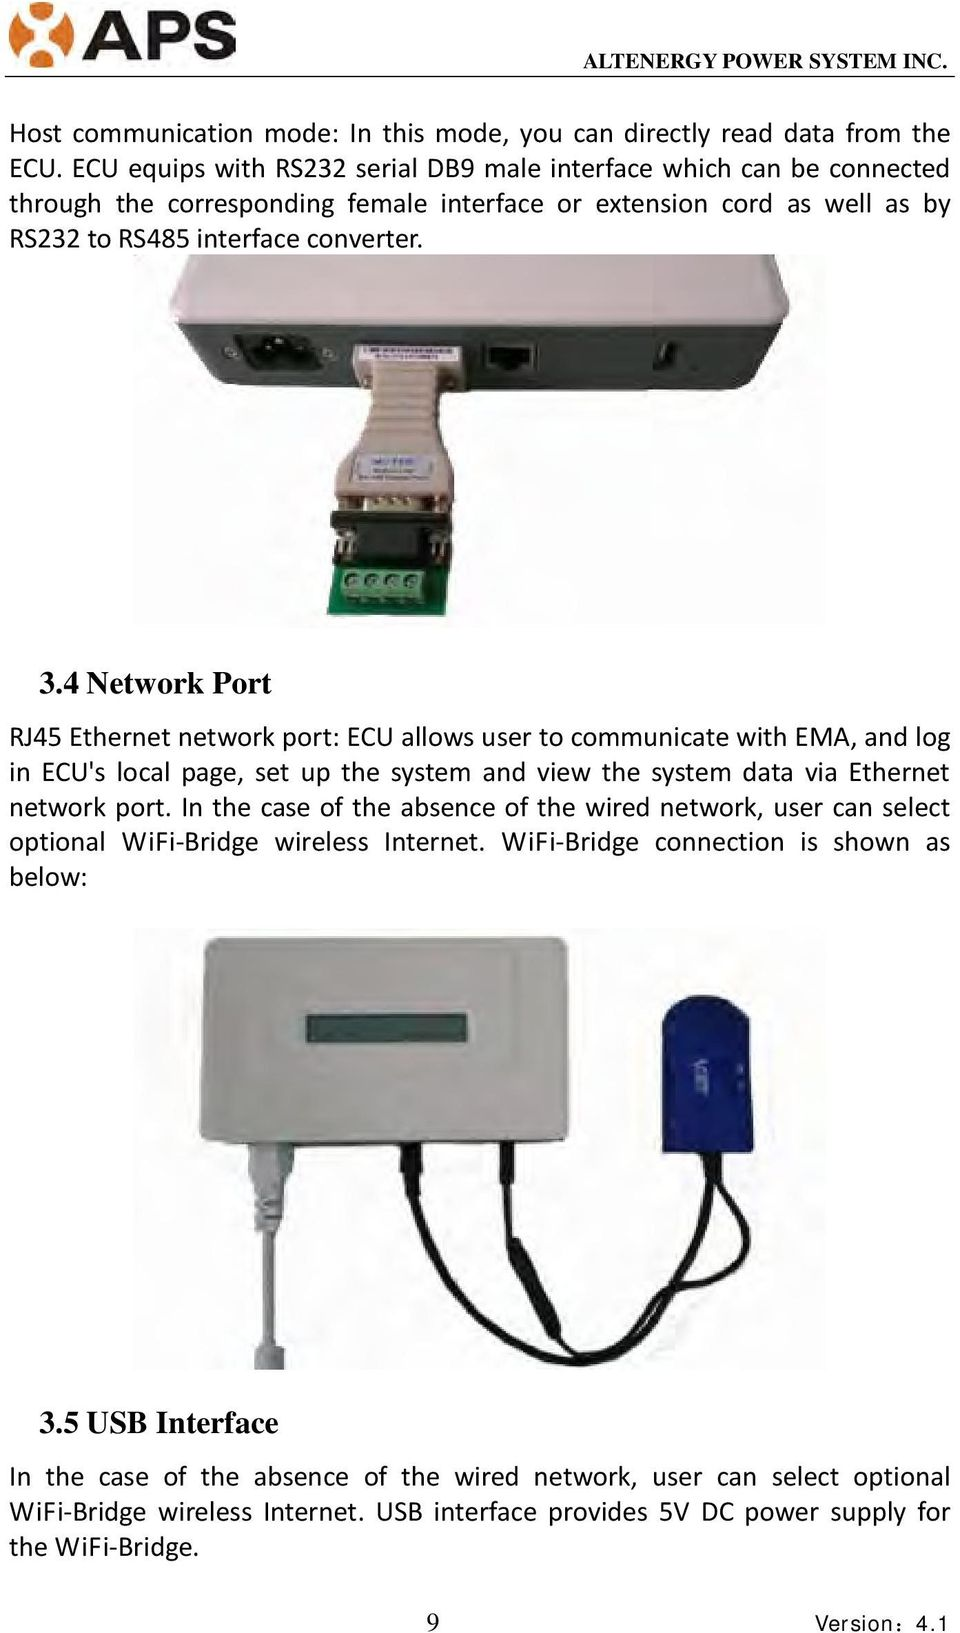 4 Network Port RJ45 Ethernet network port: ECU allows user to communicate with EMA, and log in ECU's local page, set up the system and view the system data via Ethernet network port.